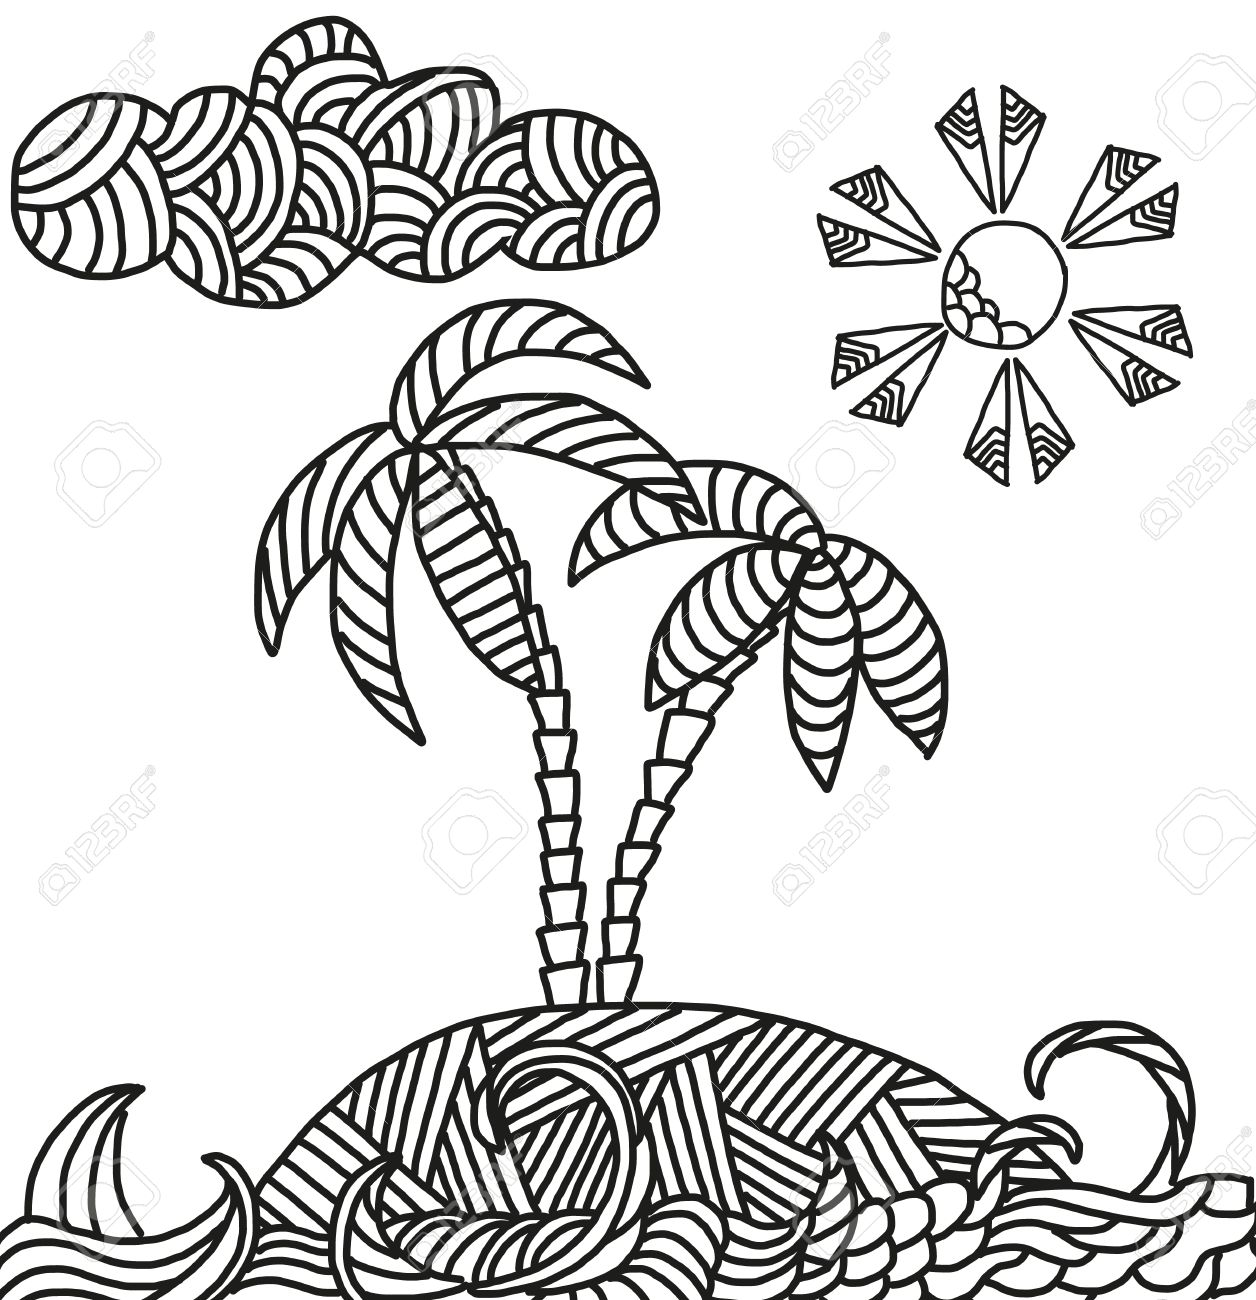 1256x1300 Zentangle Illustration Of Tropical Island With Palms And Waves